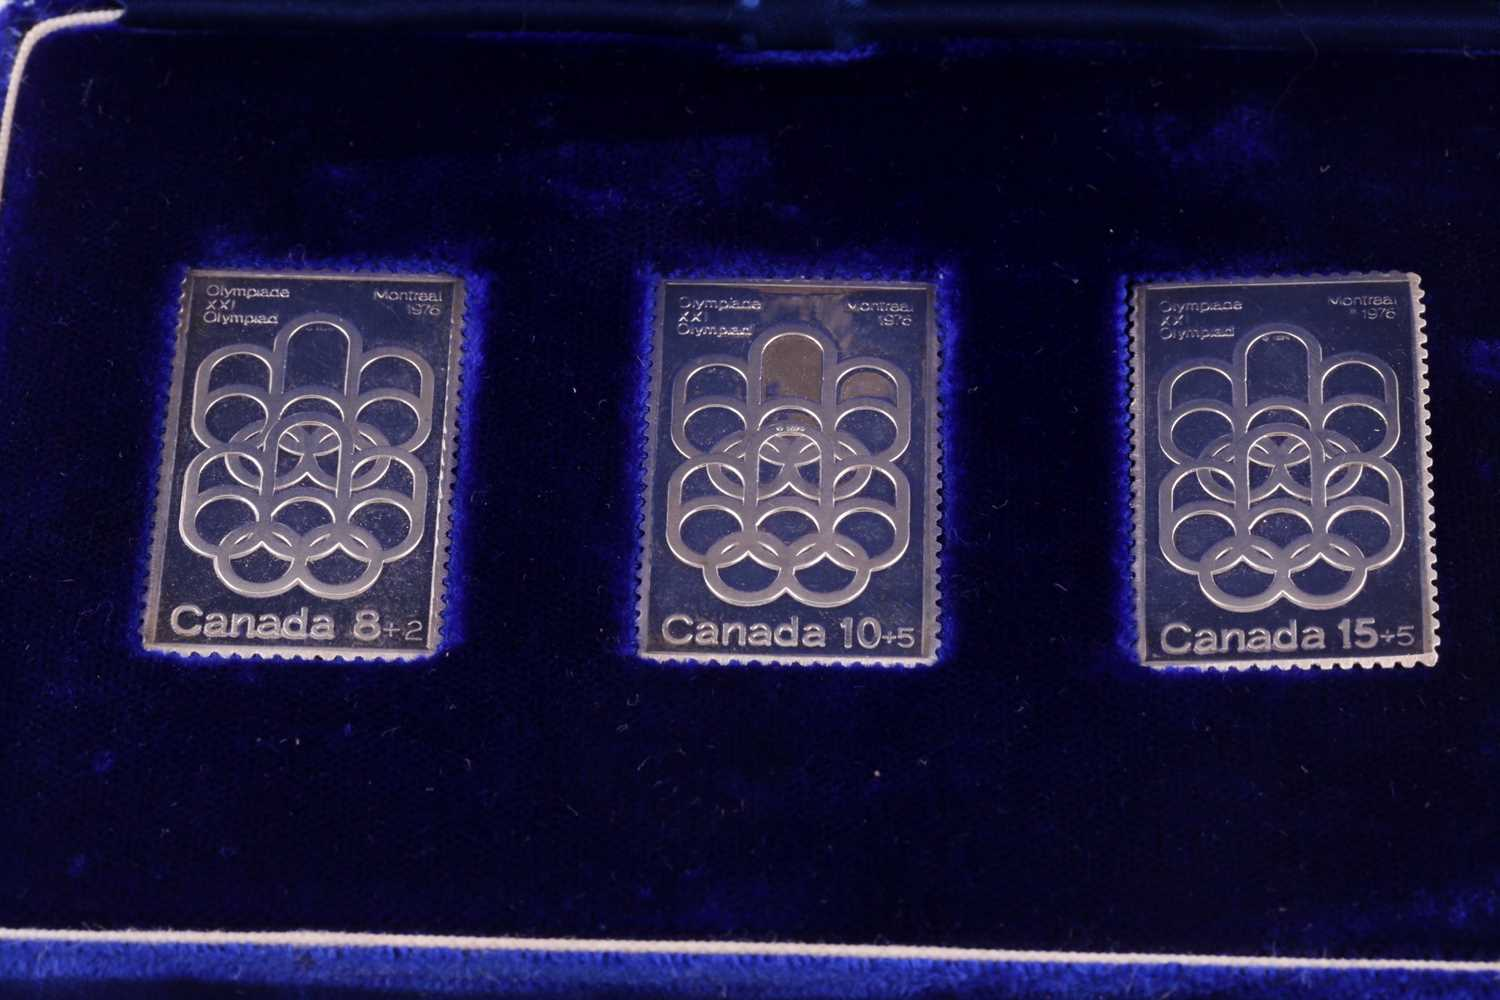 A cased set of three silver ingots, designed as stamps, in honour of the 1976 Summer Olympics, - Image 6 of 8